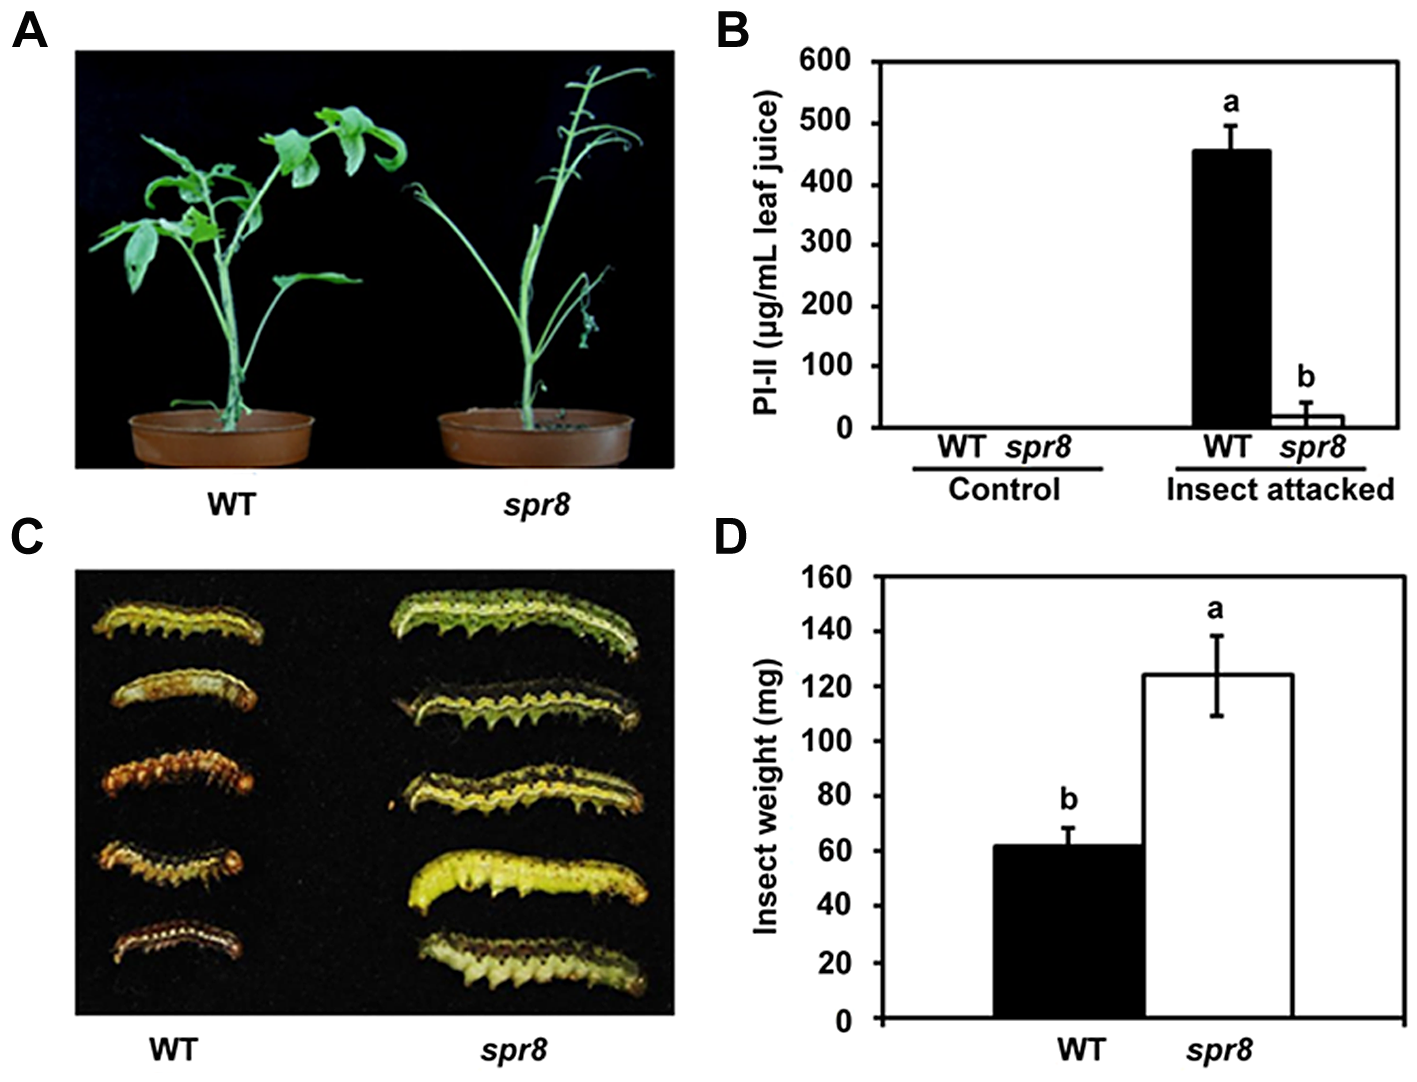 <i>spr8</i> plants show reduced resistance to cotton bollworm larvae (<i>Helicoverpa armigera</i>).